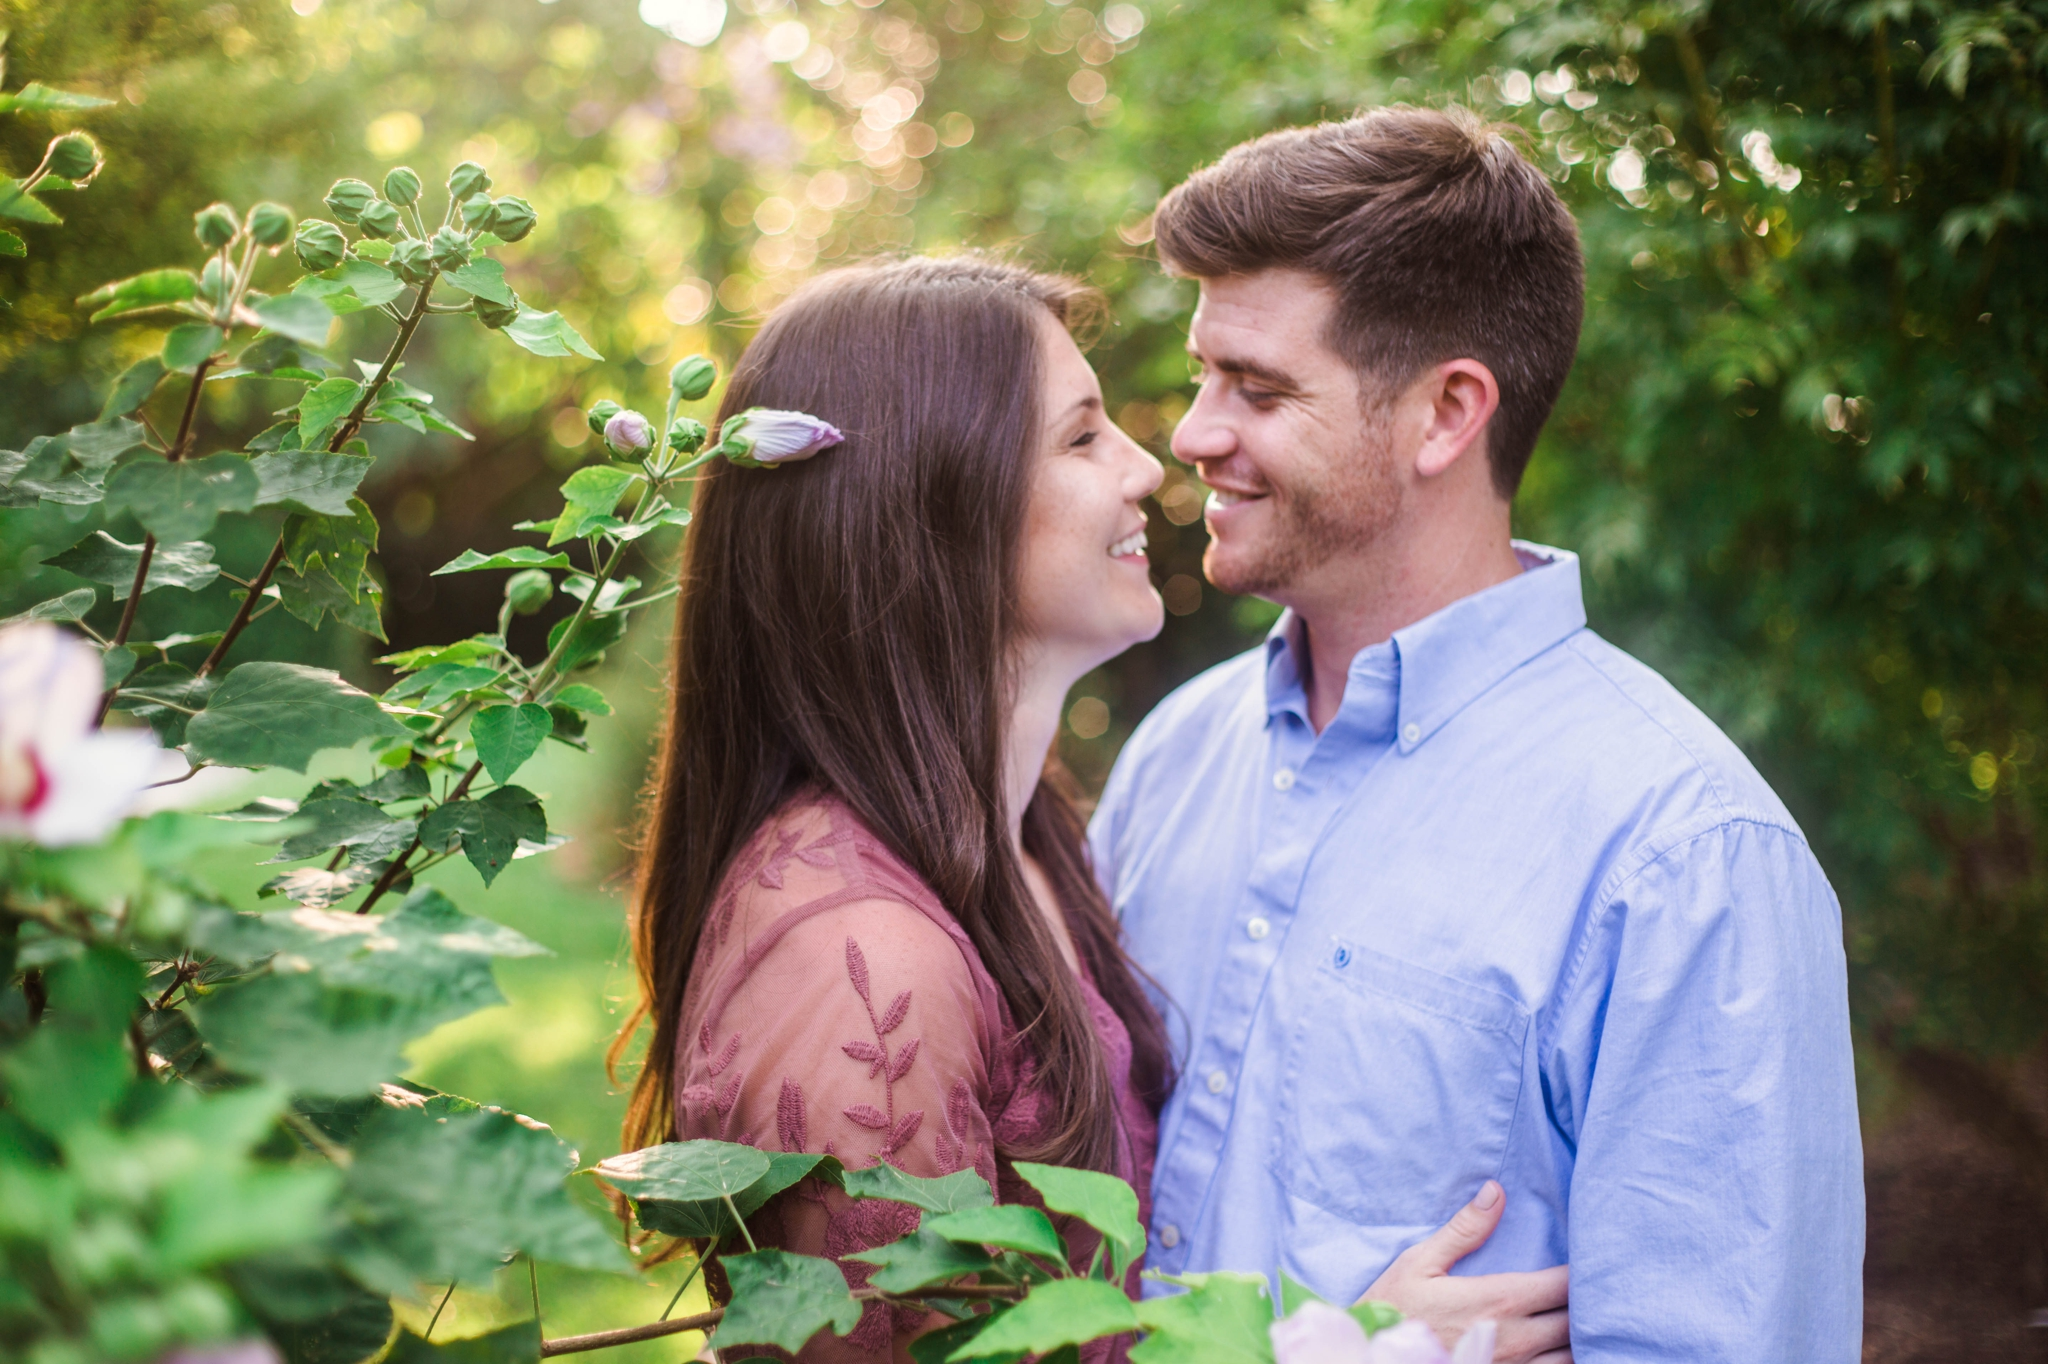 Golden Hour Engagement - Aryn + Tyler -  Photography Session at the JC Raulston Arboretum - Raleigh Wedding Photographer